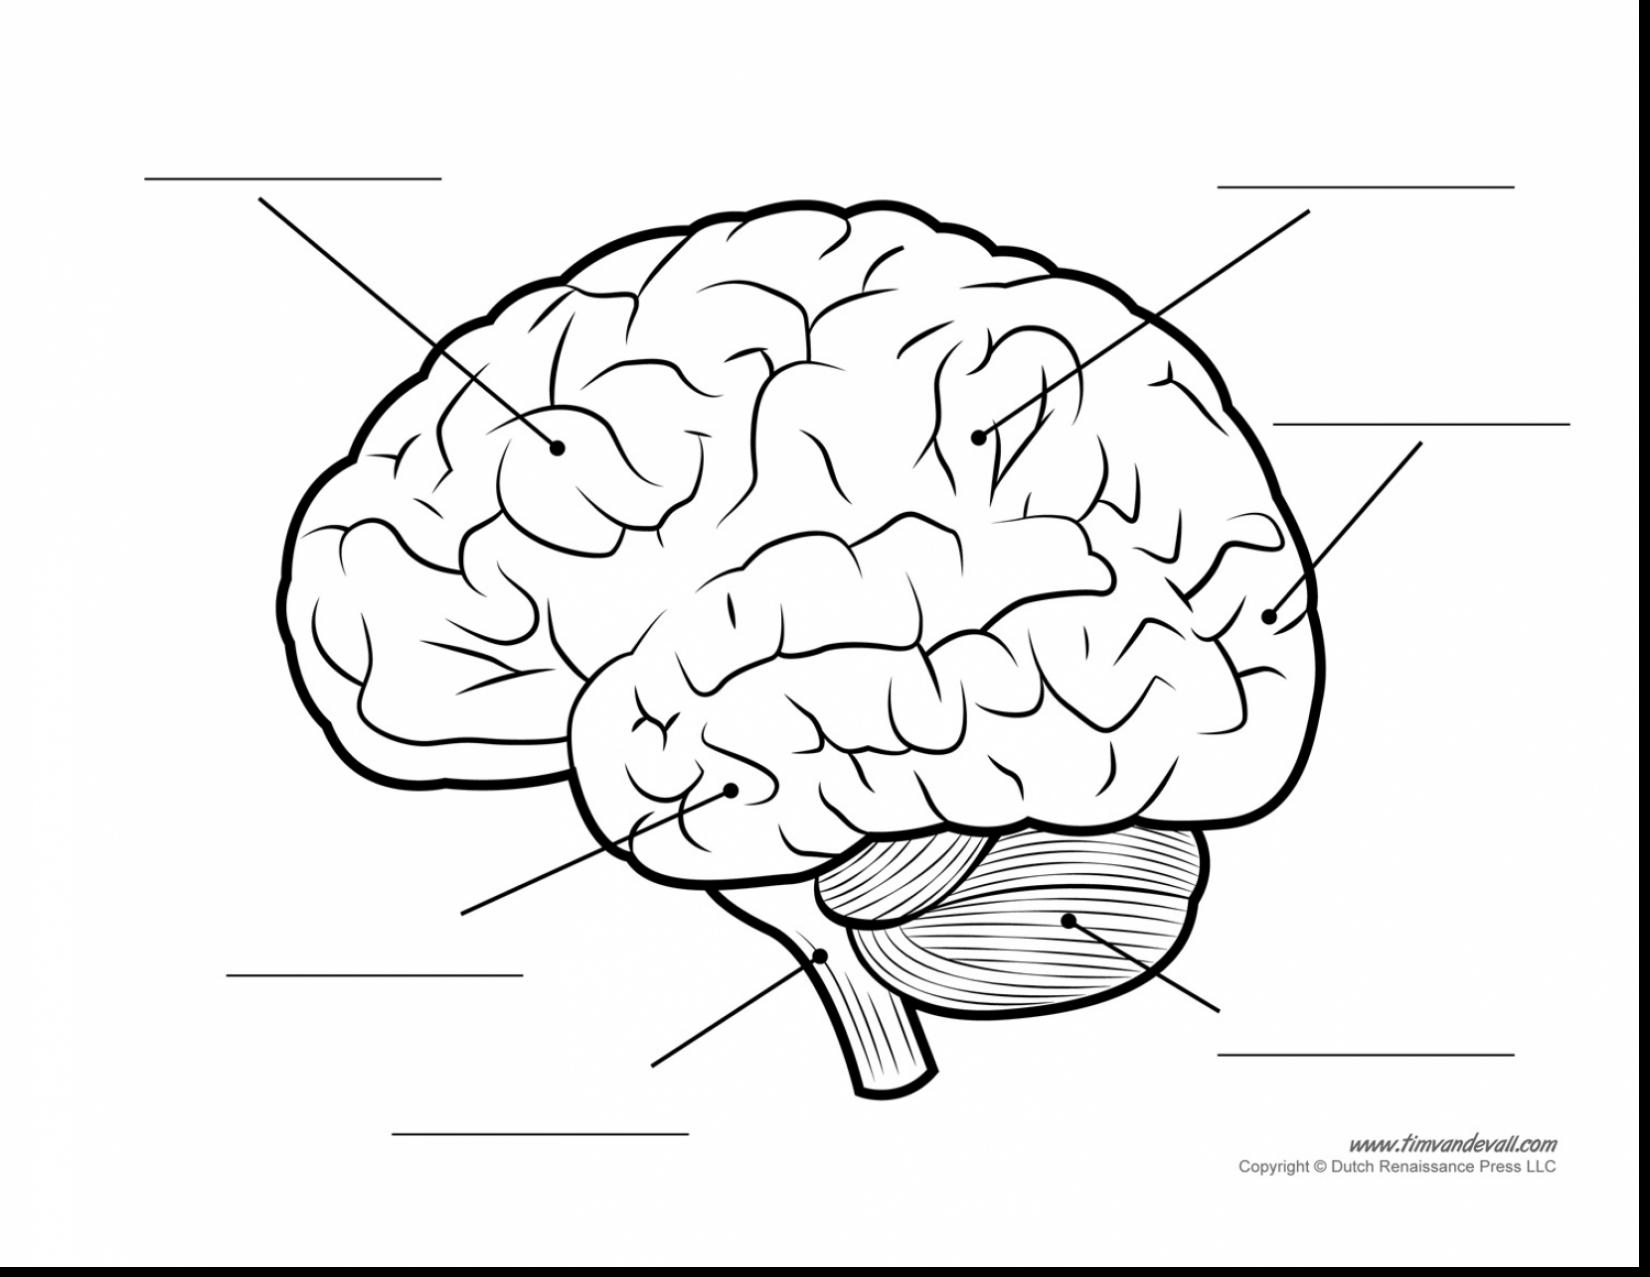 1650x1277 Unbelievable Human Brain Diagram Blank With Coloring Page